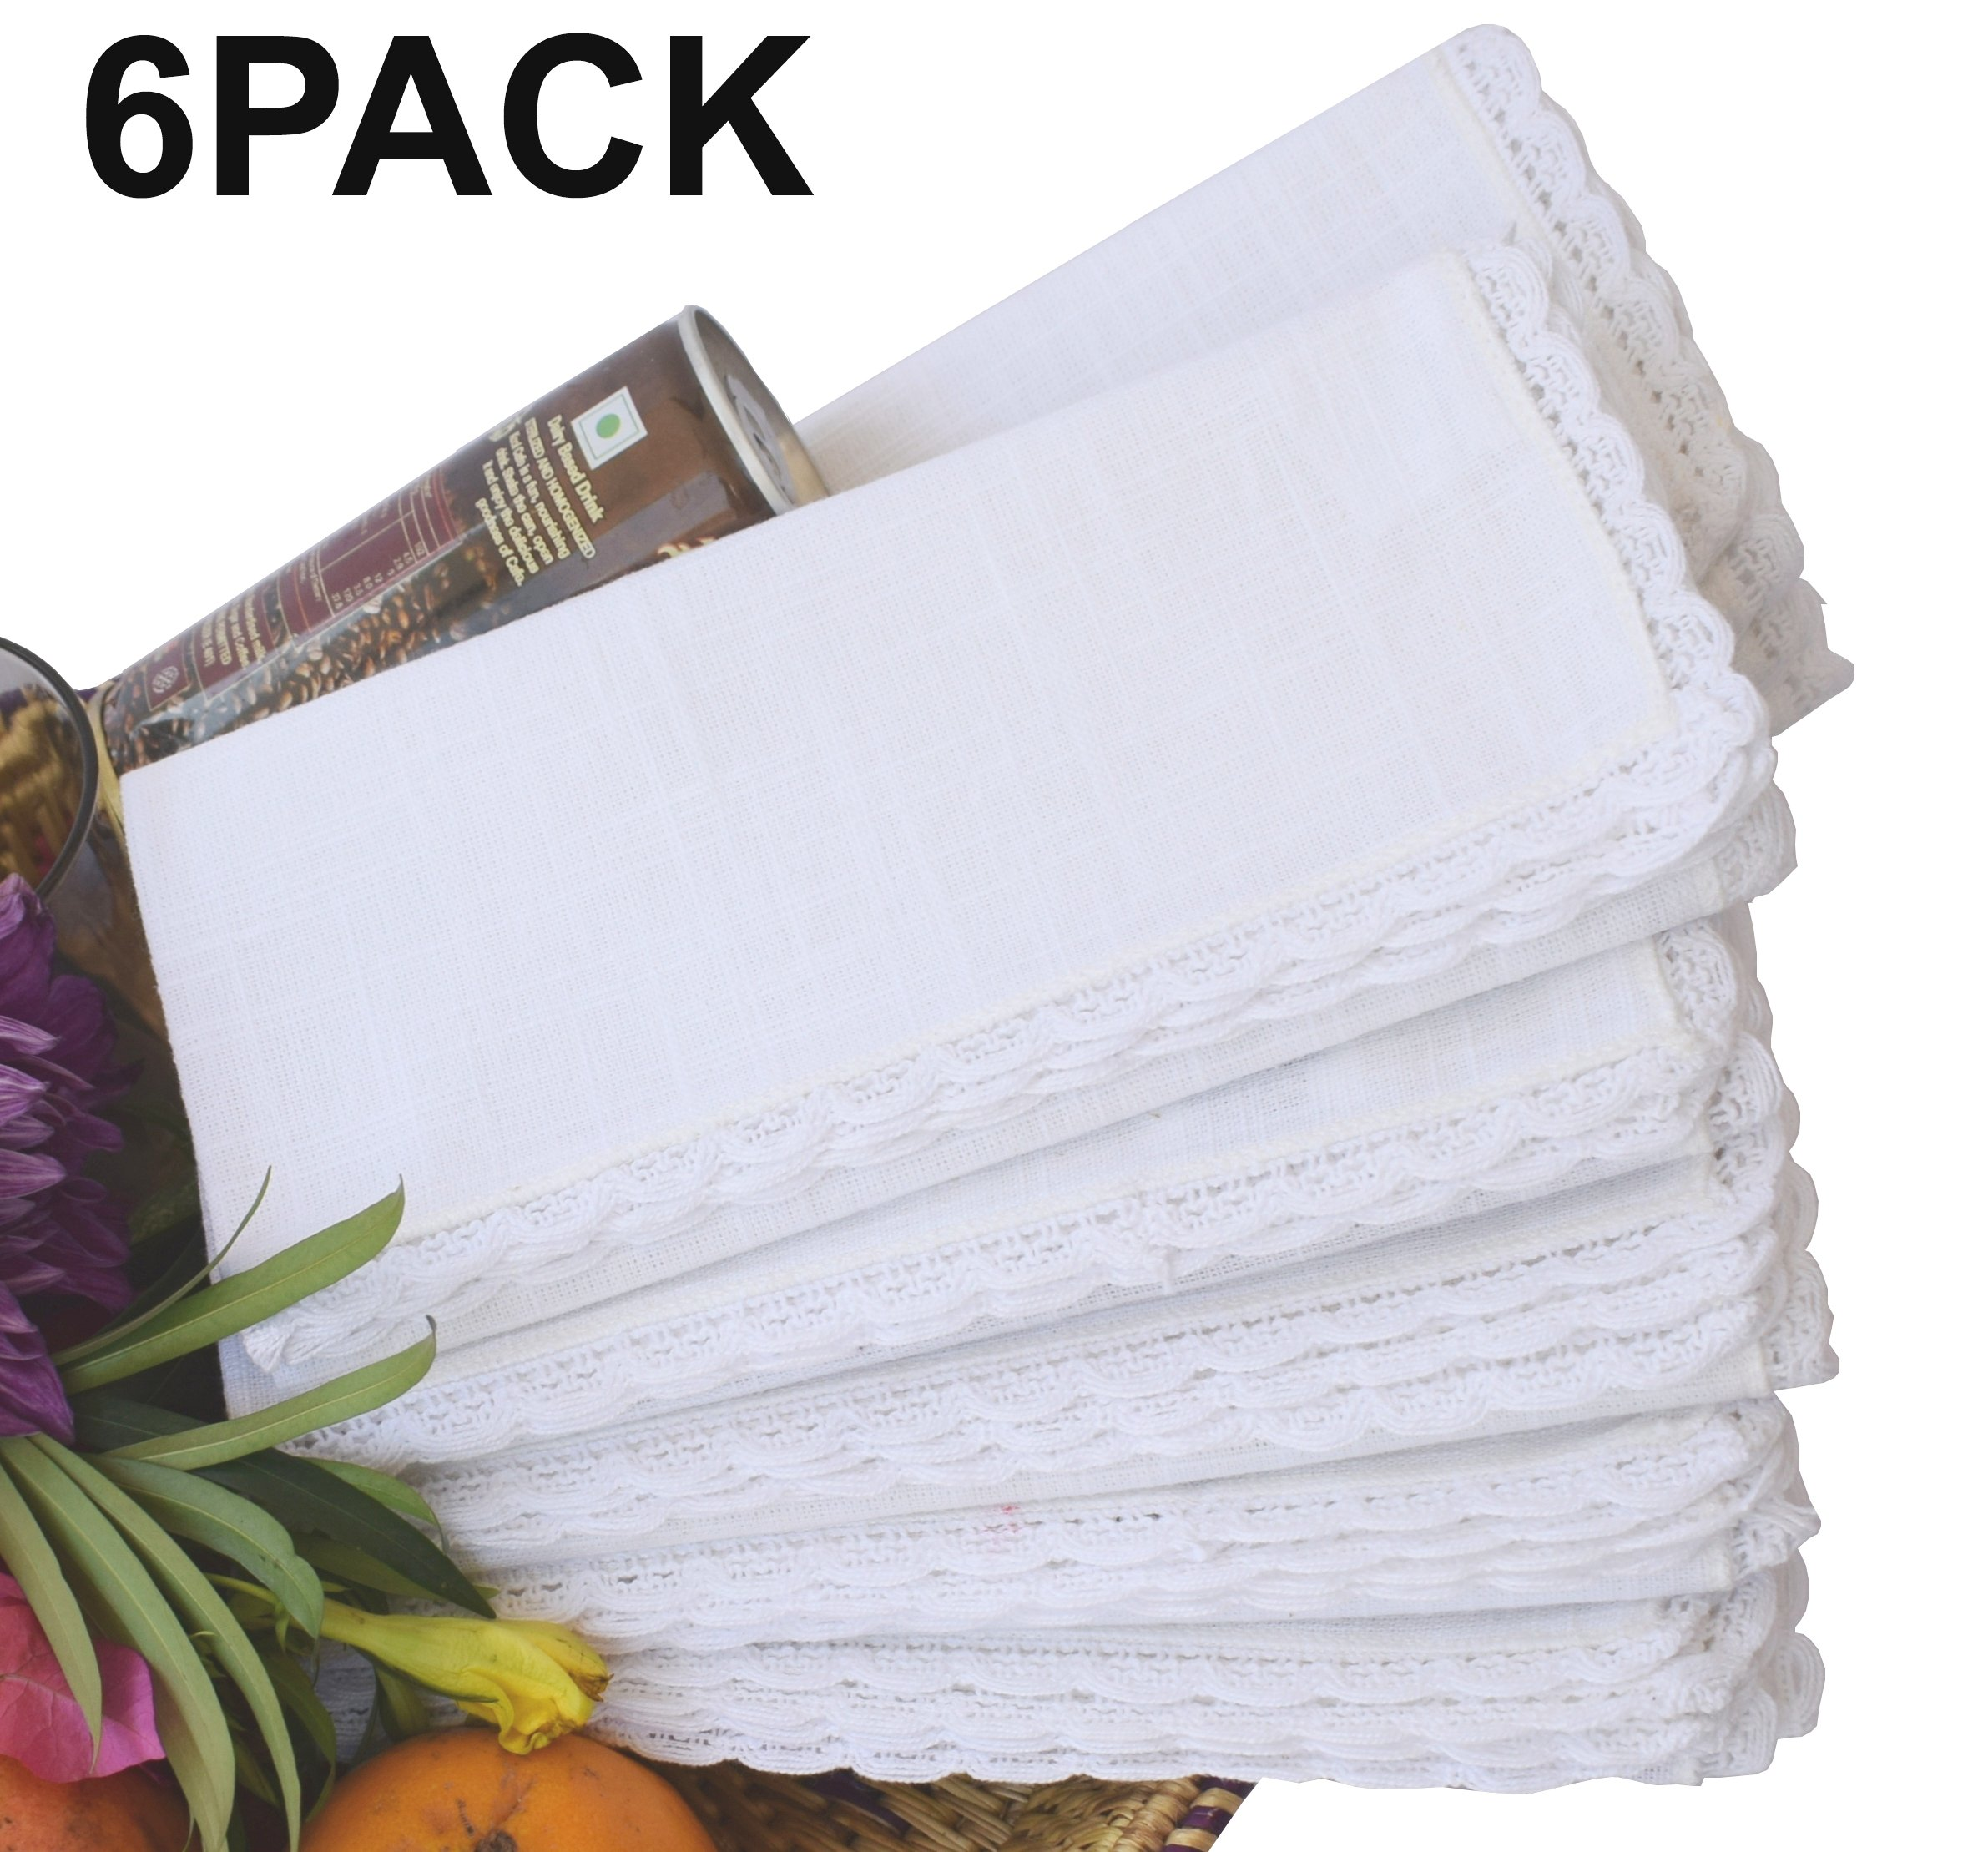 Linen Clubs - Slub Cotton Dinner Napkins with Crochet Lace - White - 16x16 (Set of 6) - 100% Egyptian Slub Cotton with Linen Look - Elegant Cloth - Super value Hand made Ladder Lace Look Napkins